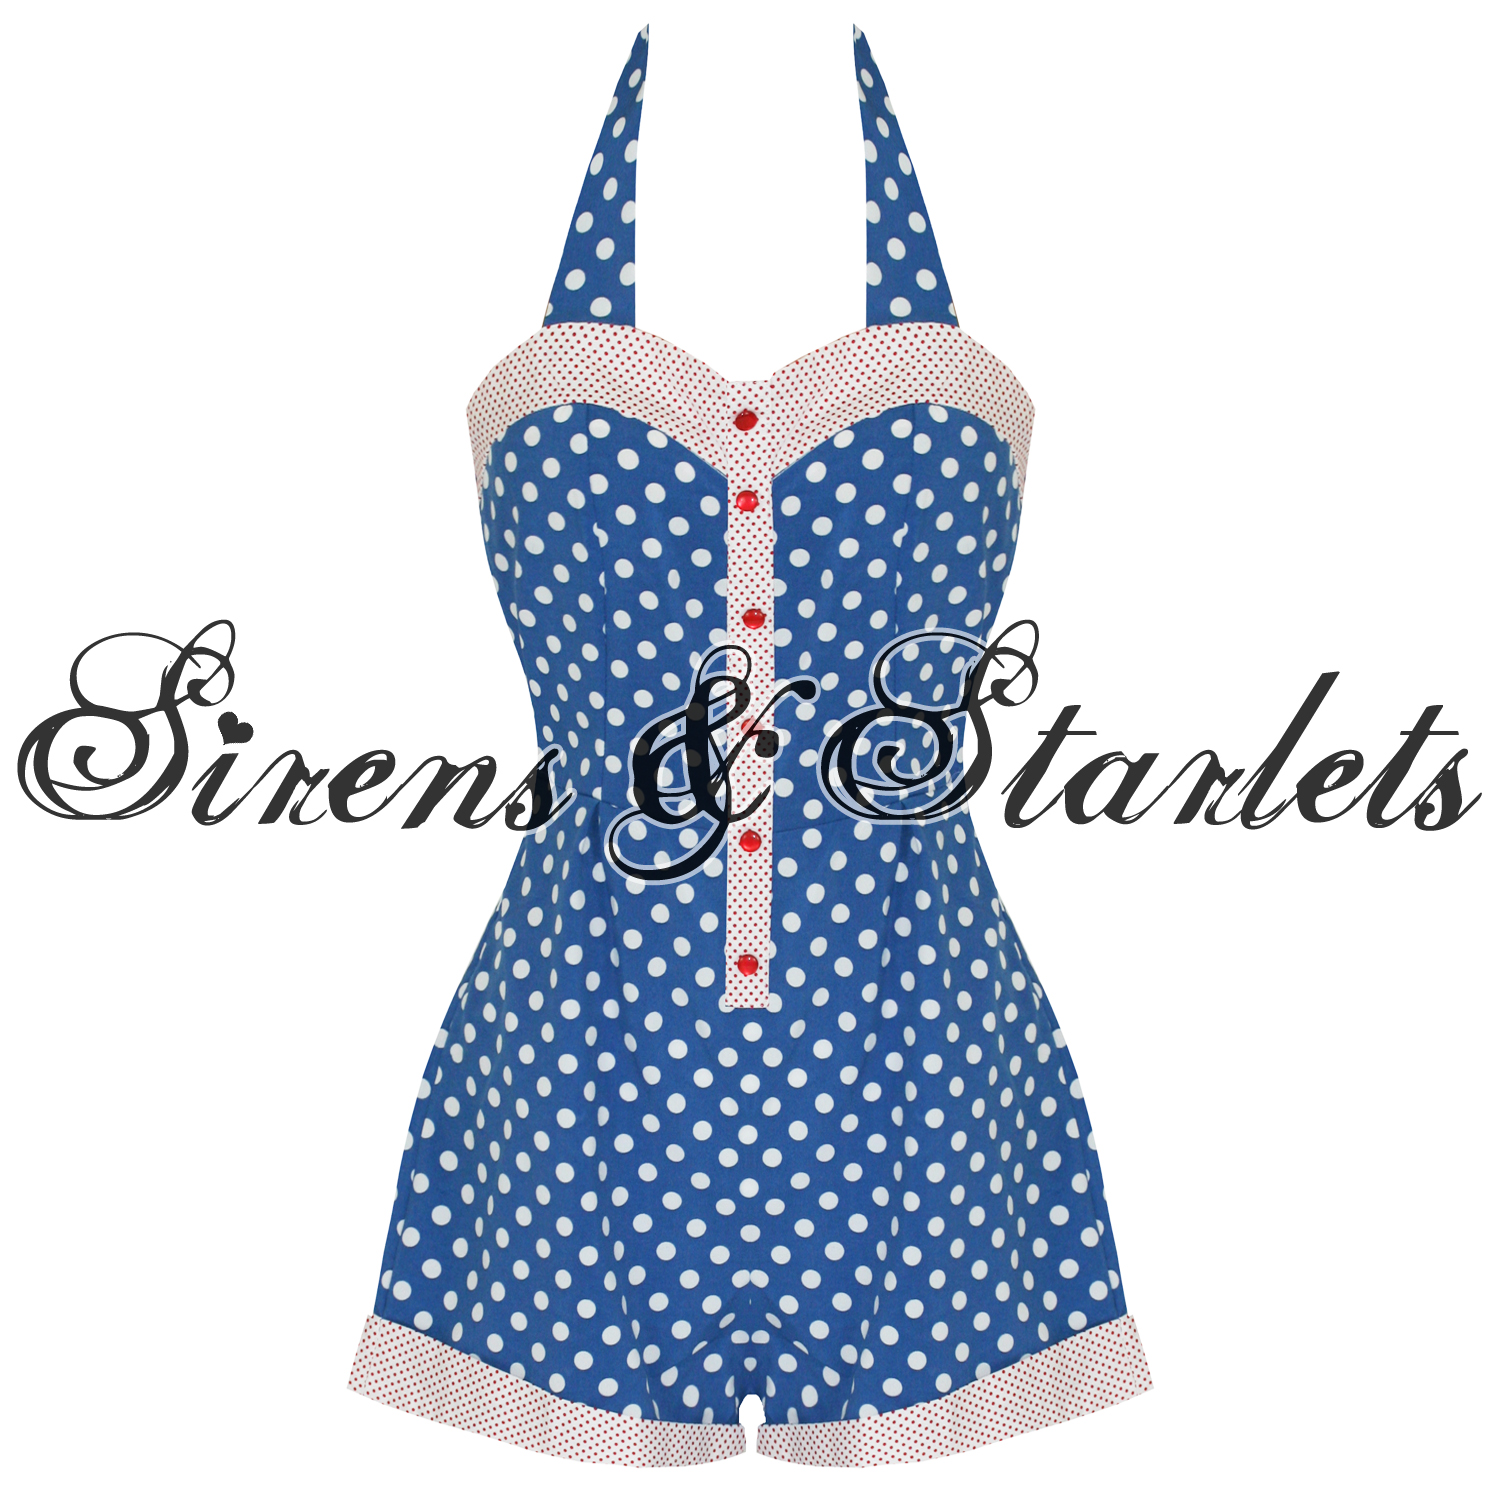 BANNED-LADIES-BLUE-POLKA-DOT-ROCKABILLY-50S-RETRO-VINTAGE-PINUP-ROMPER-PLAYSUIT